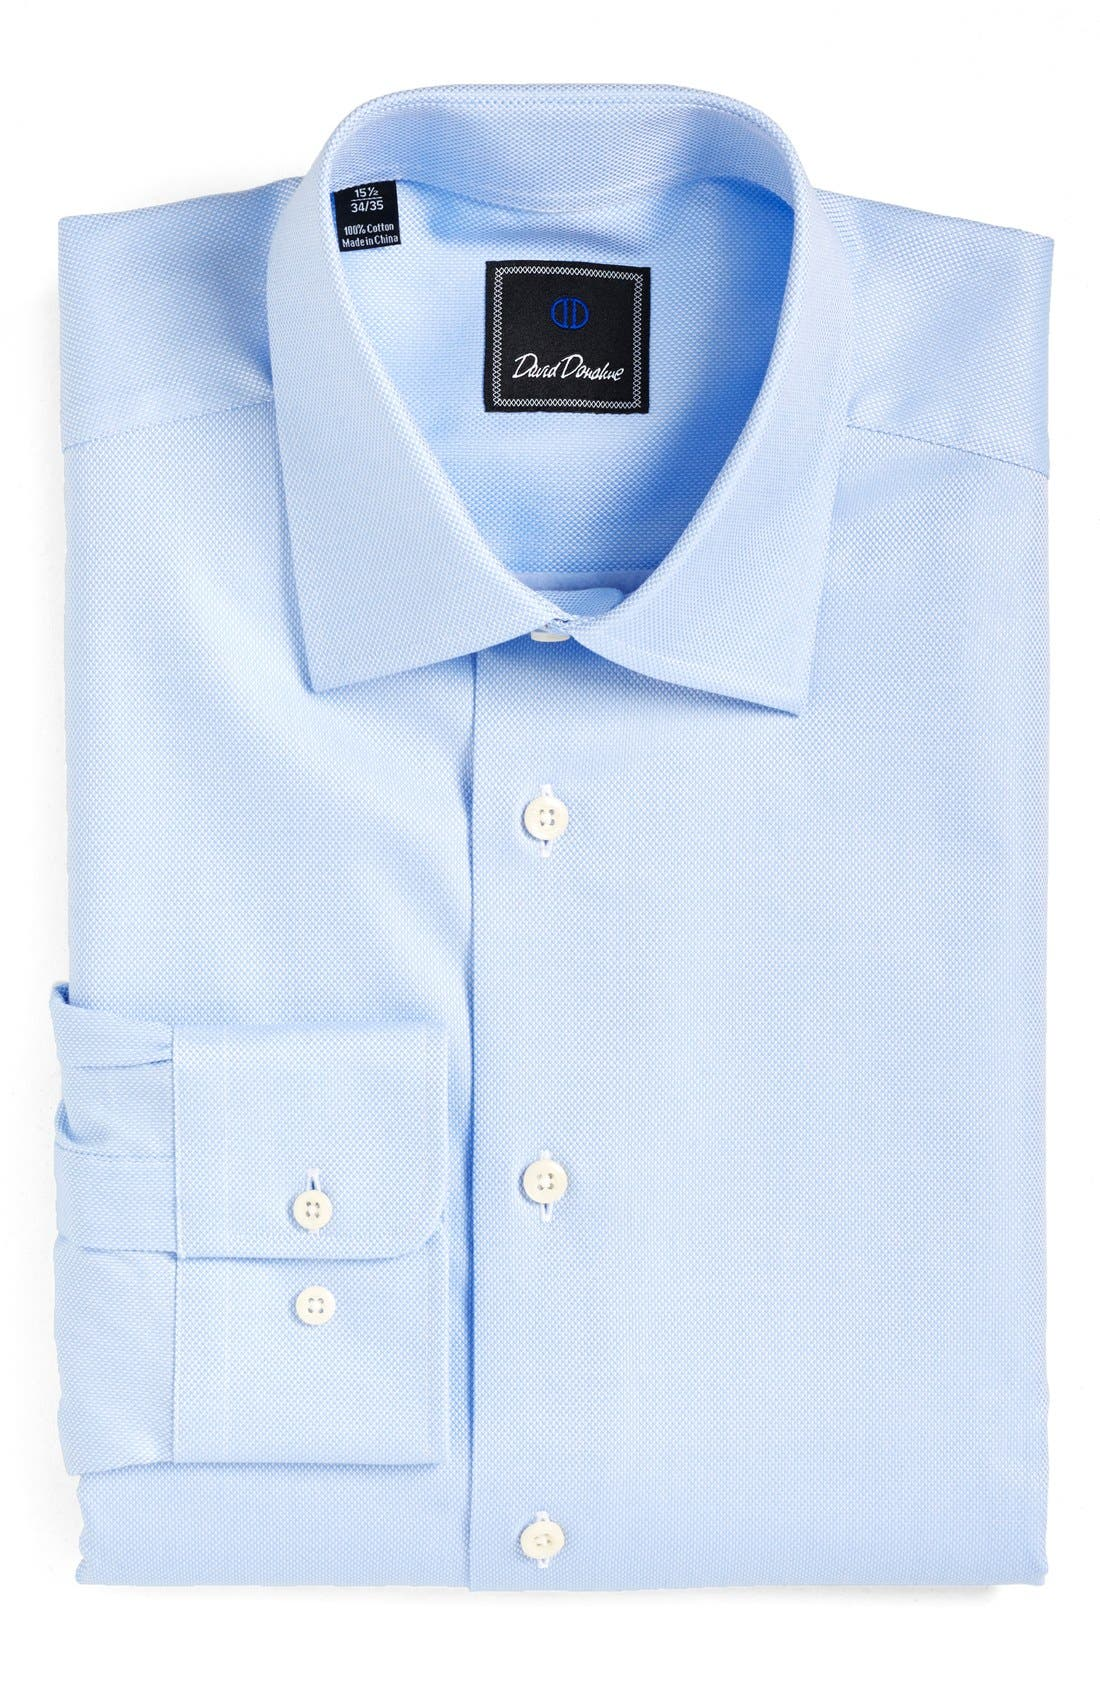 DAVID DONAHUE Regular Fit Oxford Dress Shirt